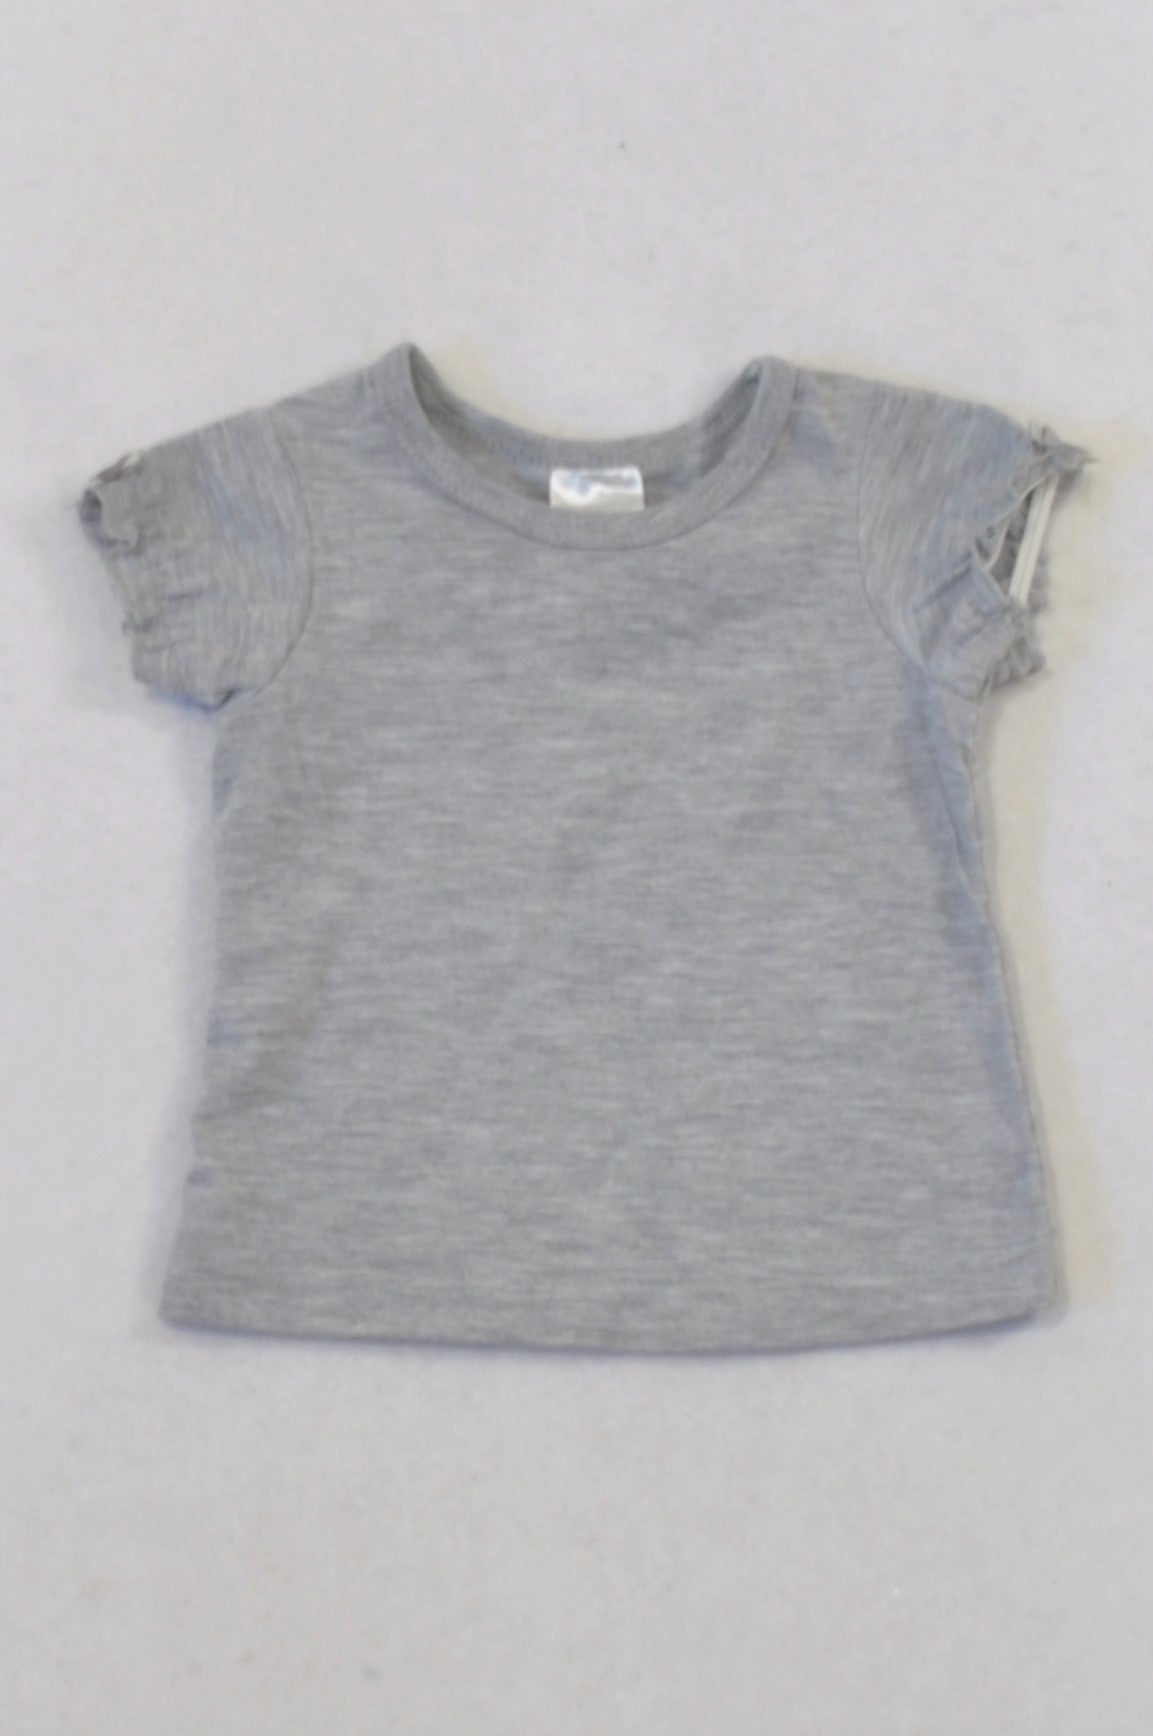 Edgars Basic Grey Frill Arm Bow Detail T-shirt Girls 0-3 months